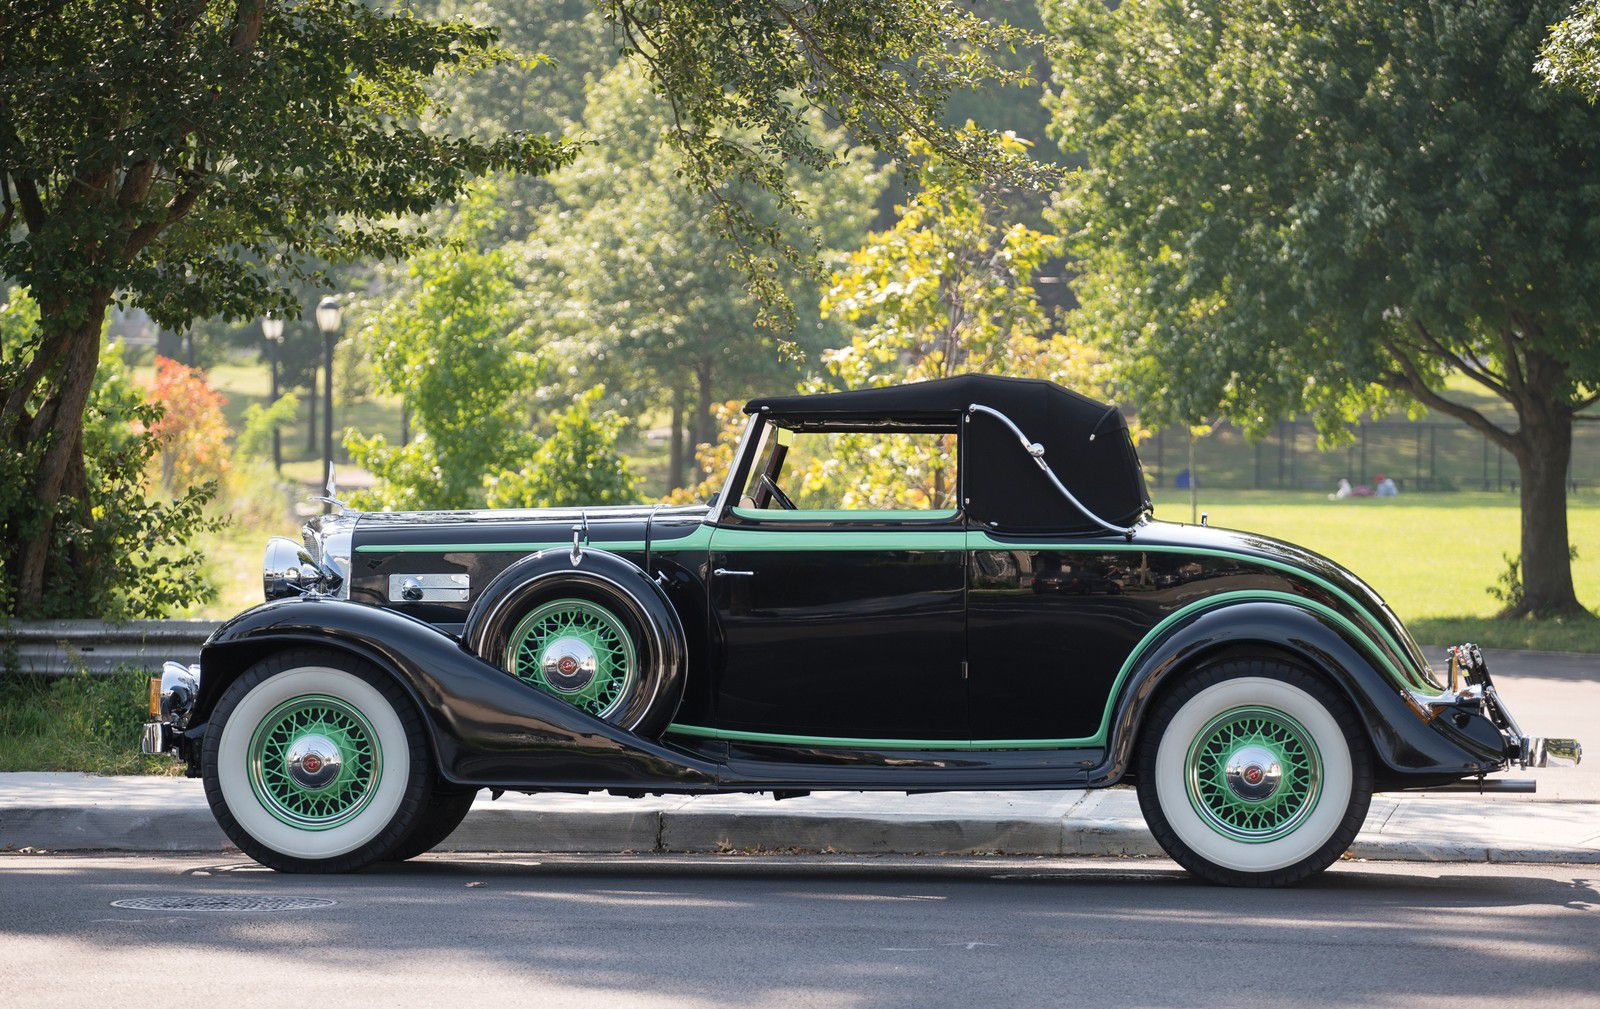 VOITURES DE LEGENDE (1171) : LaSalle V8 CONVERIBLE COUPE - 1933